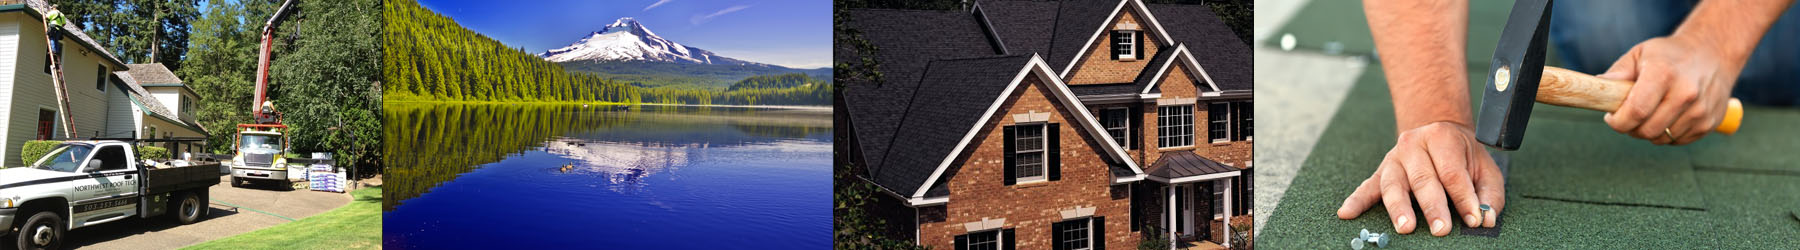 NW Roof Tech is a Roofing Contractor and Roofing Company serving Vancouver WA and Portland OR